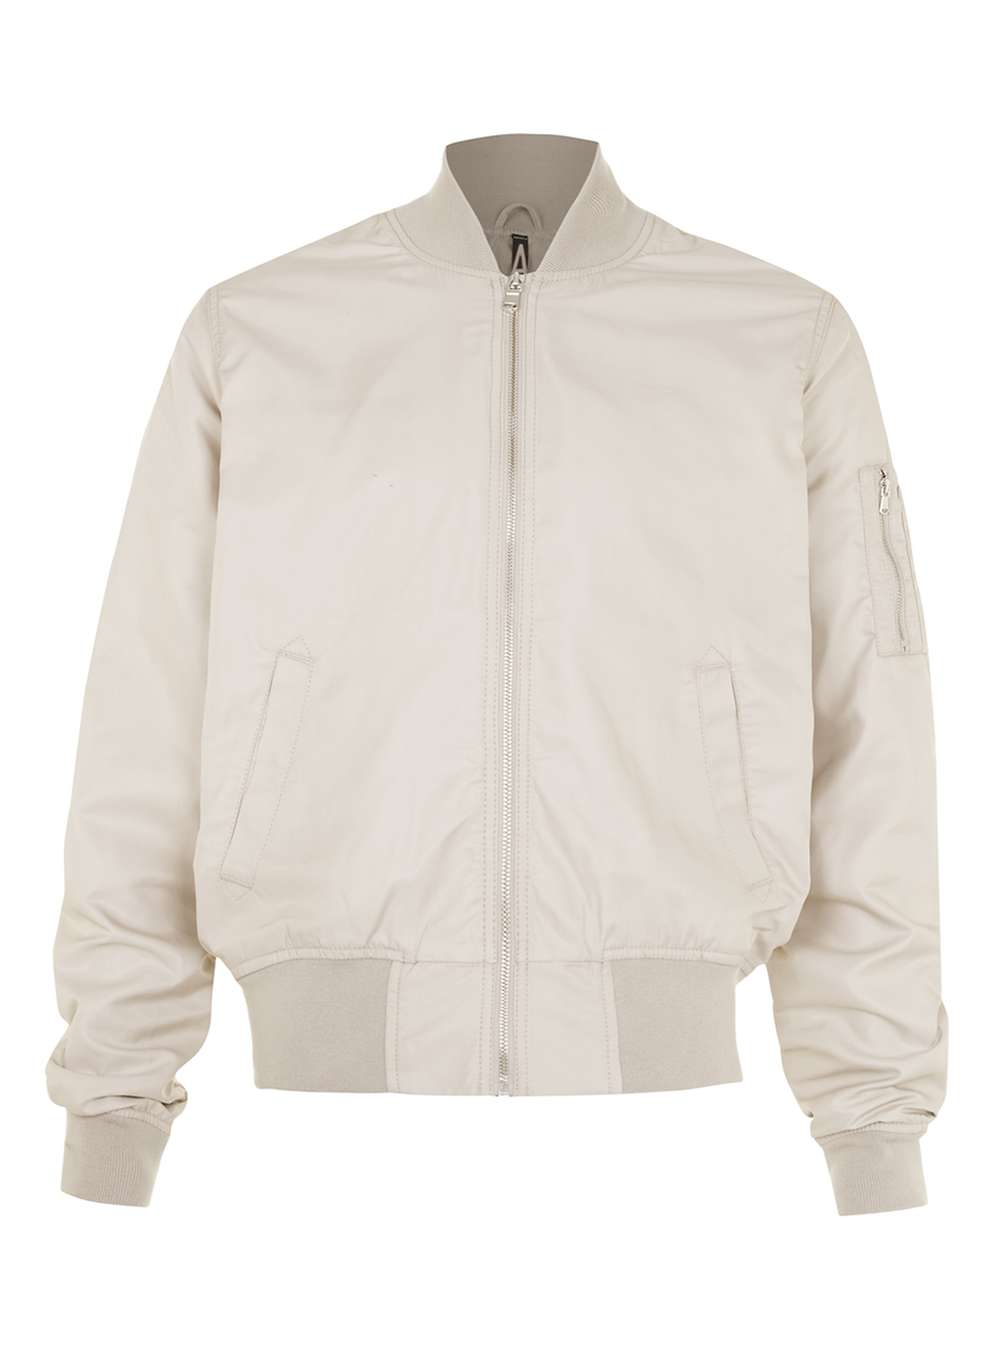 TOPMAN   AAA Stone Ruched Bomber Jacket , £65